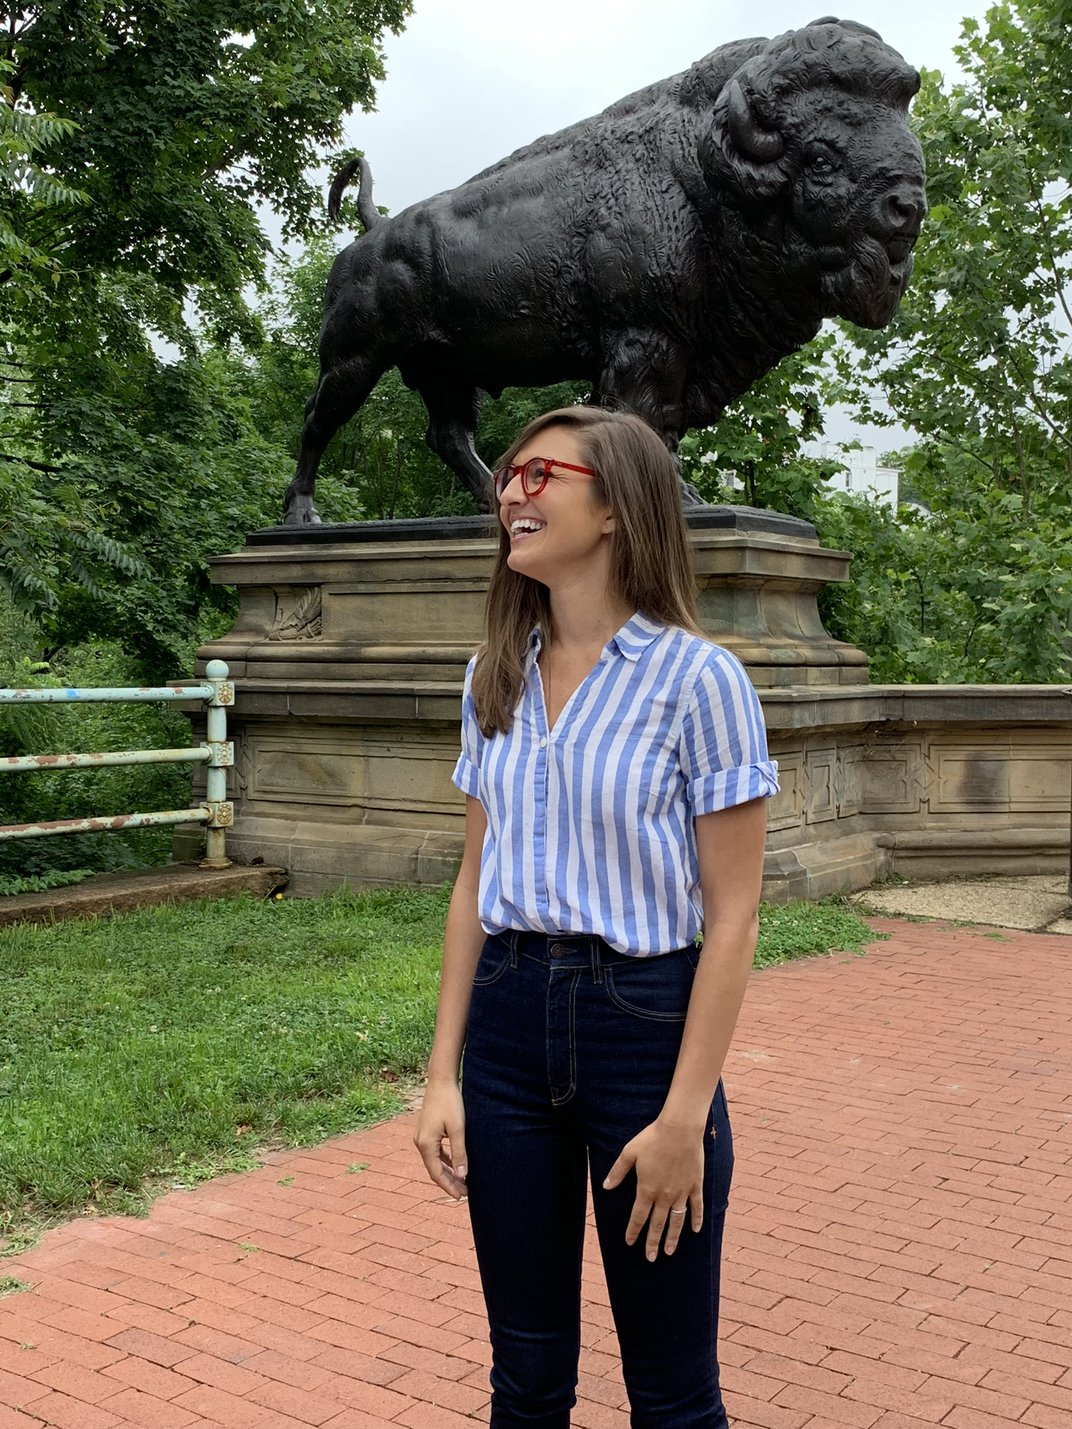 A photograph of a woman standing in front of a sculpture of a buffalo.